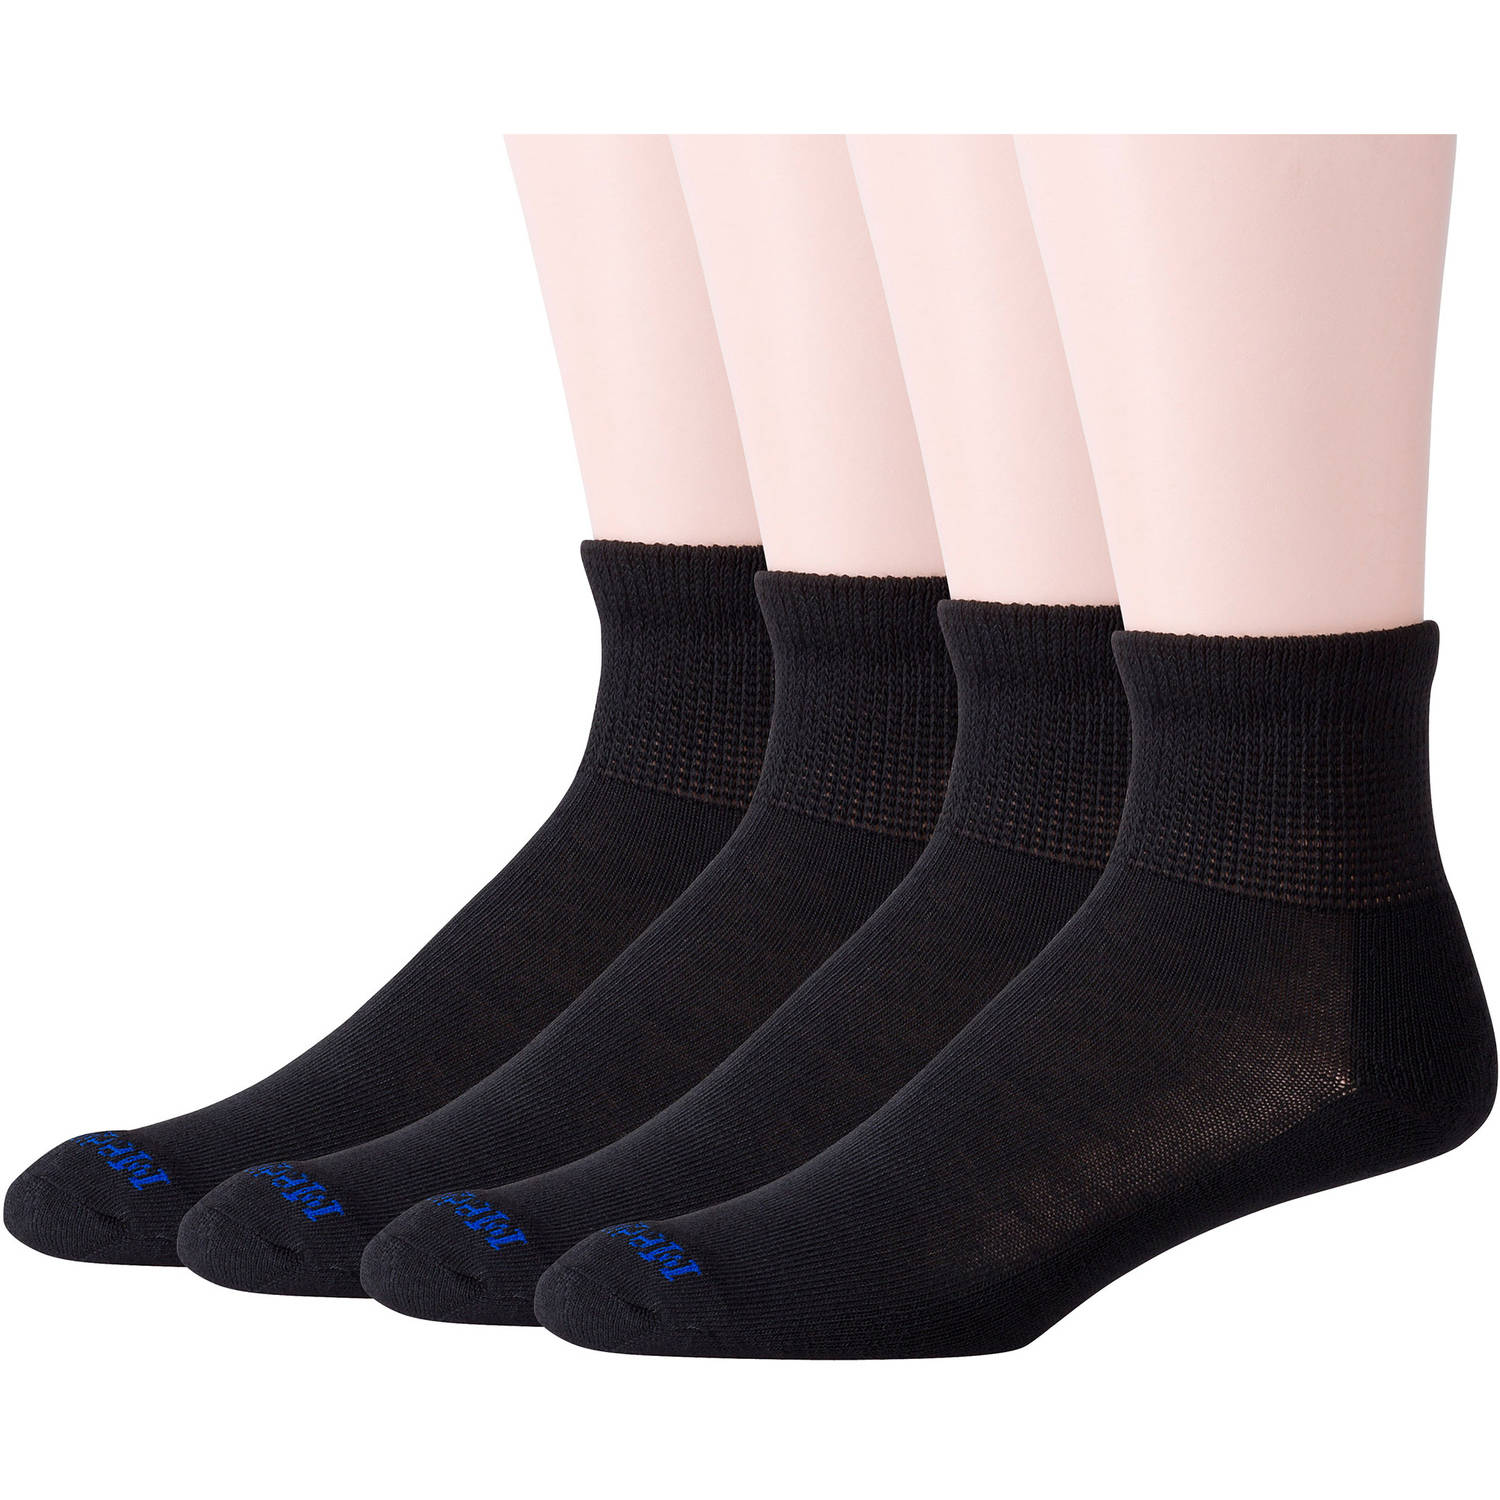 Men's Diabetic Quarter Socks with Coolmax and Non-Binding Top Value Pack, 4 Pairs